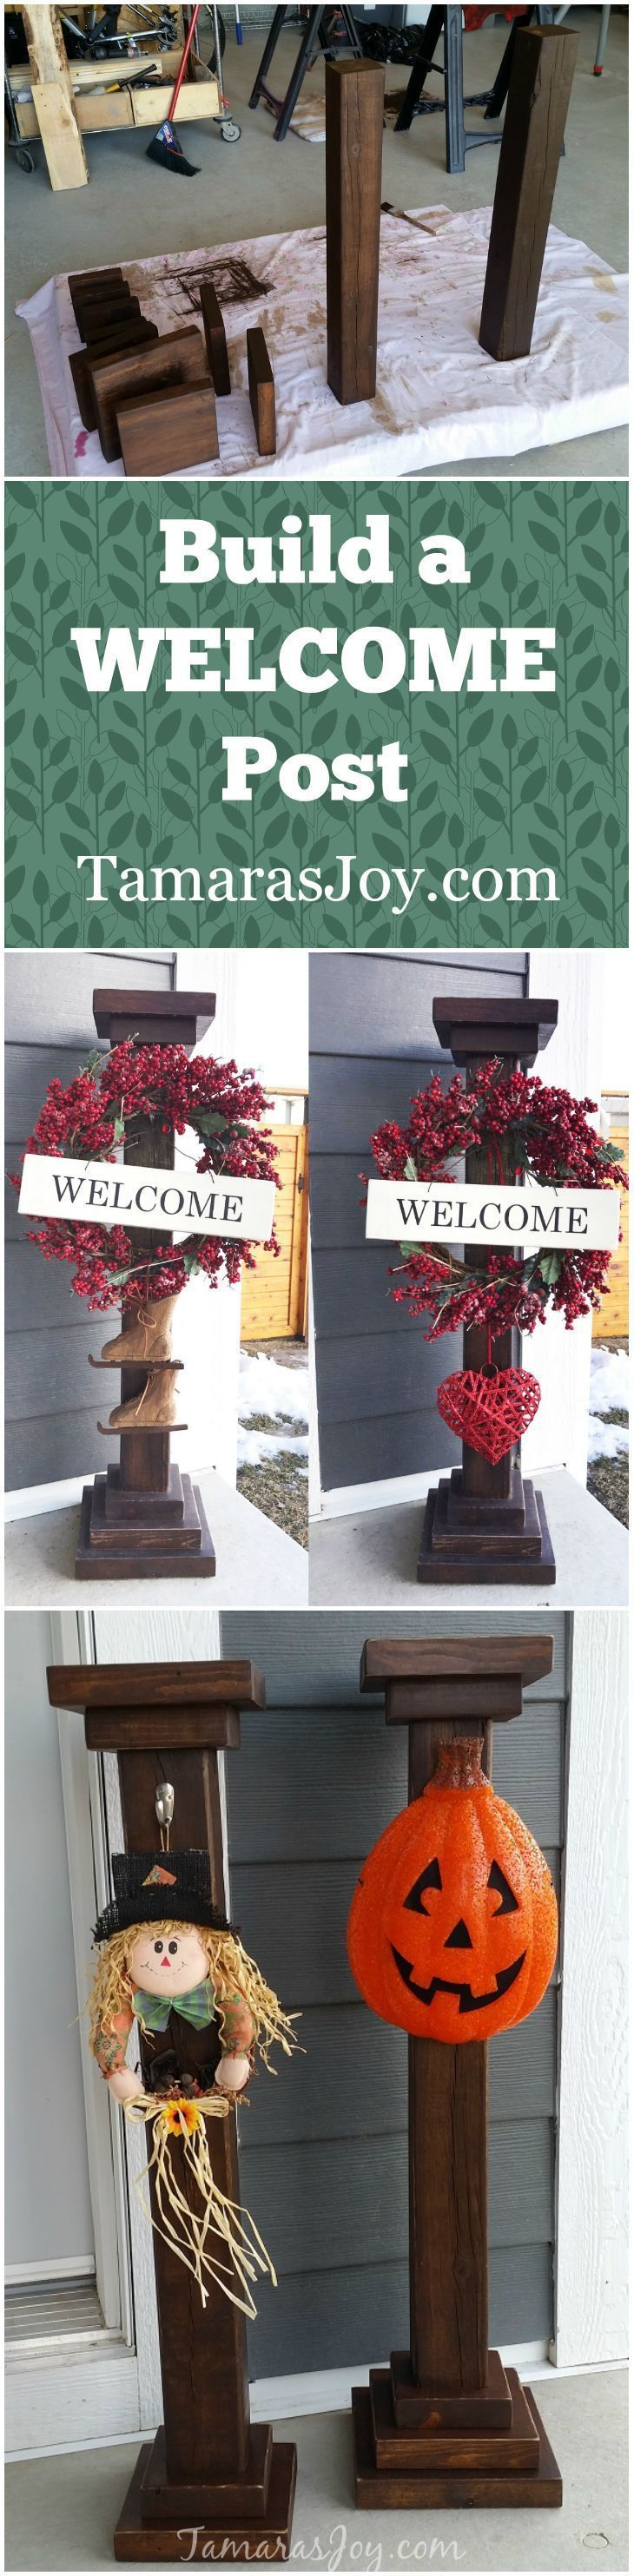 Build a simple Welcome post and decorate it for the seasons. http://Tamarasjoy.com/